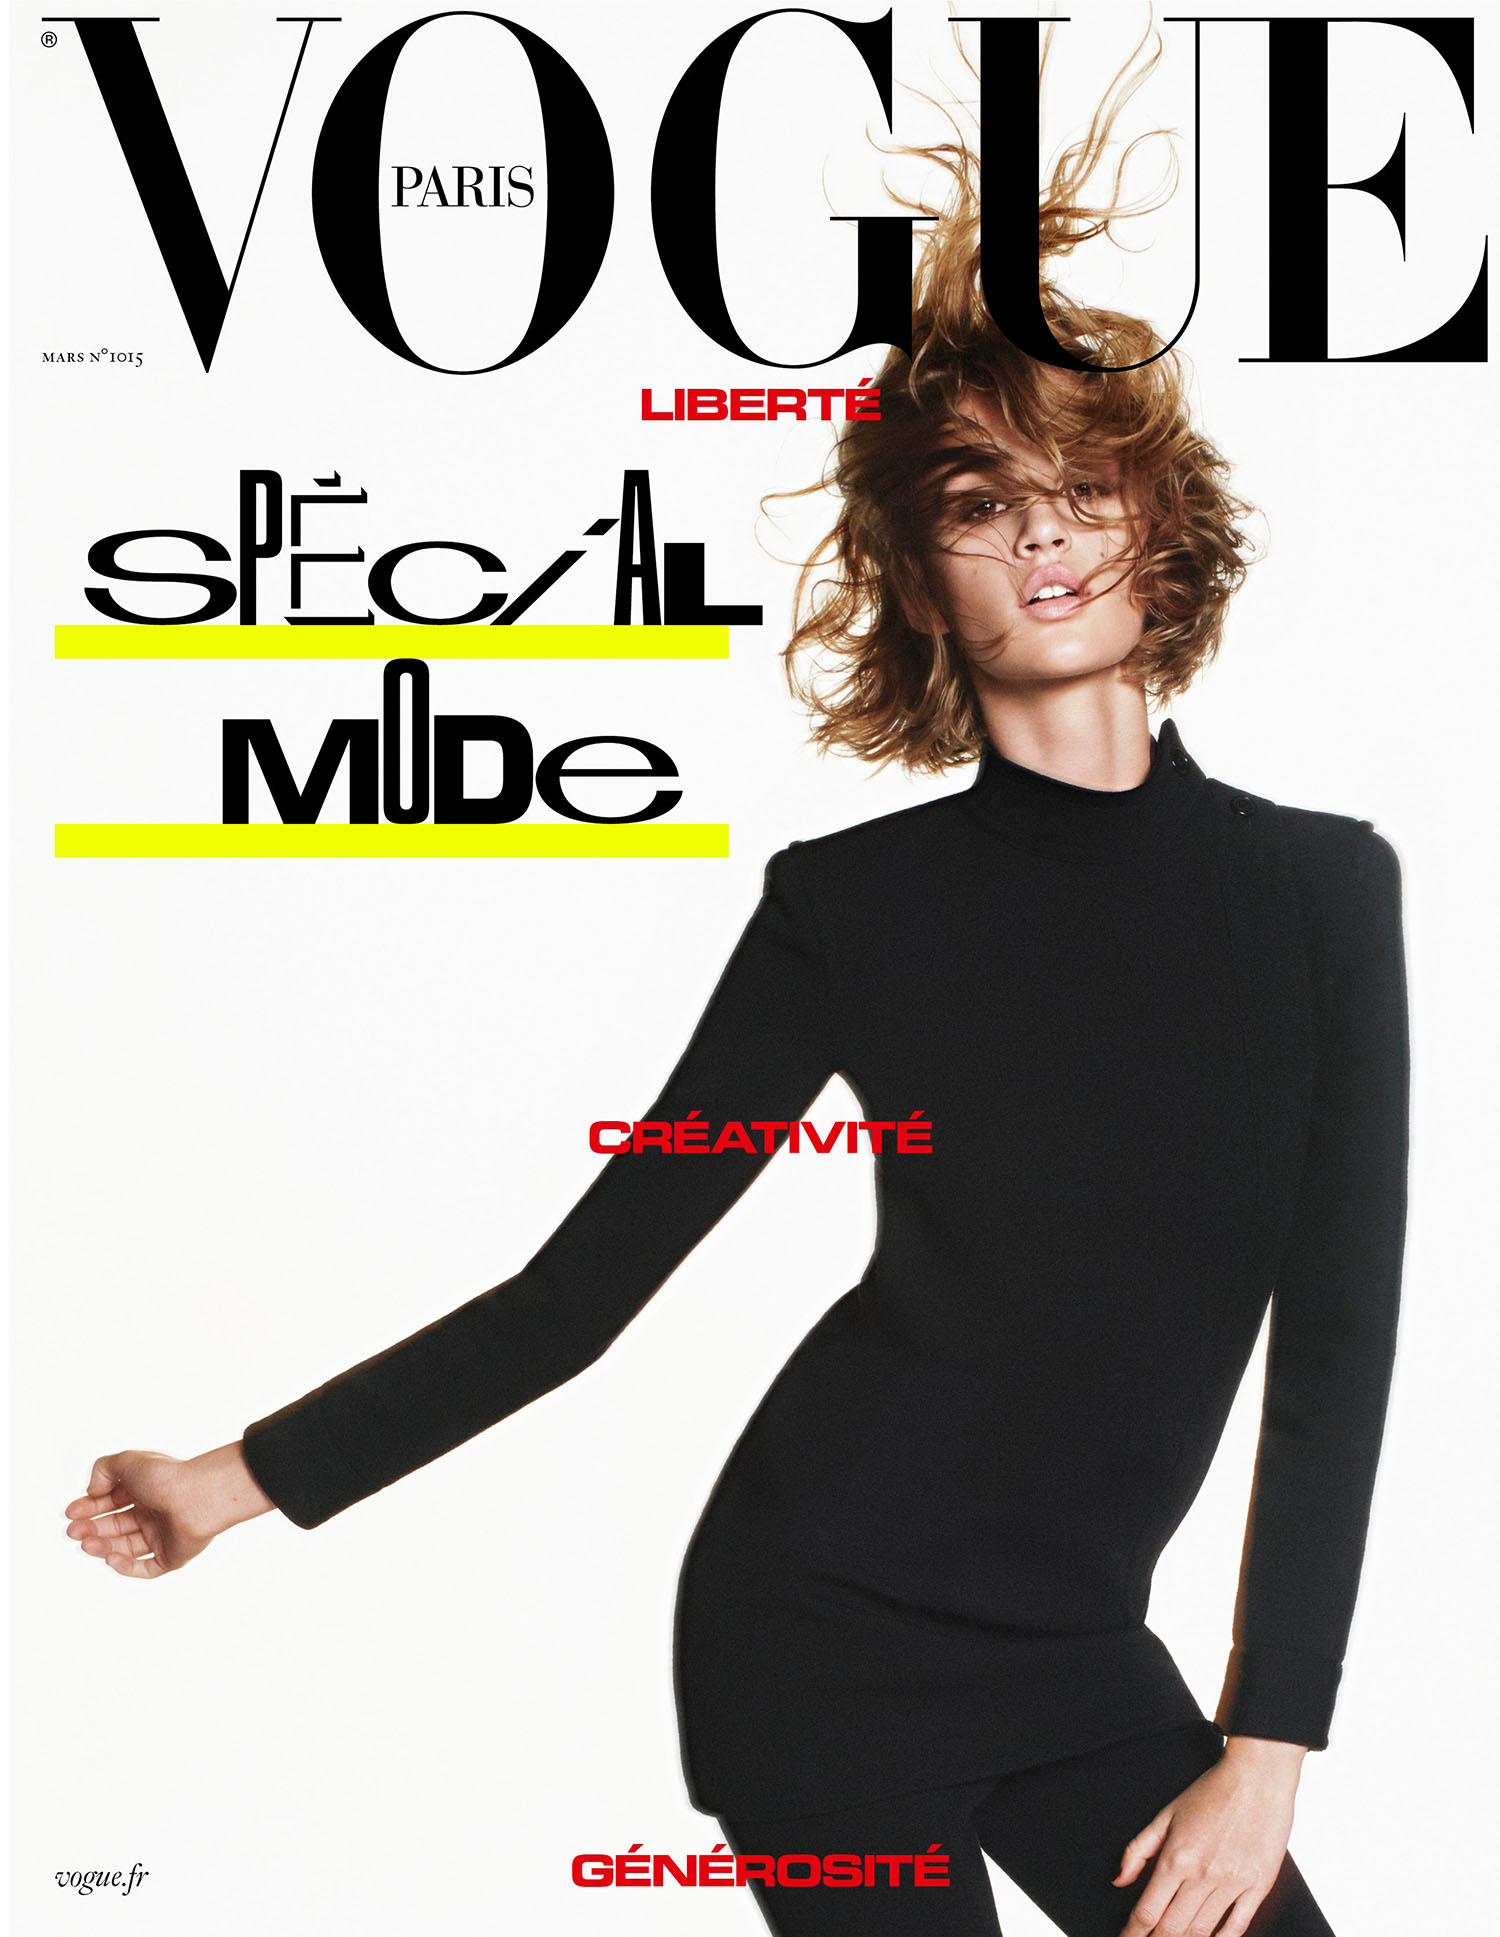 Quinn Mora covers Vogue Paris March 2021 by David Sims